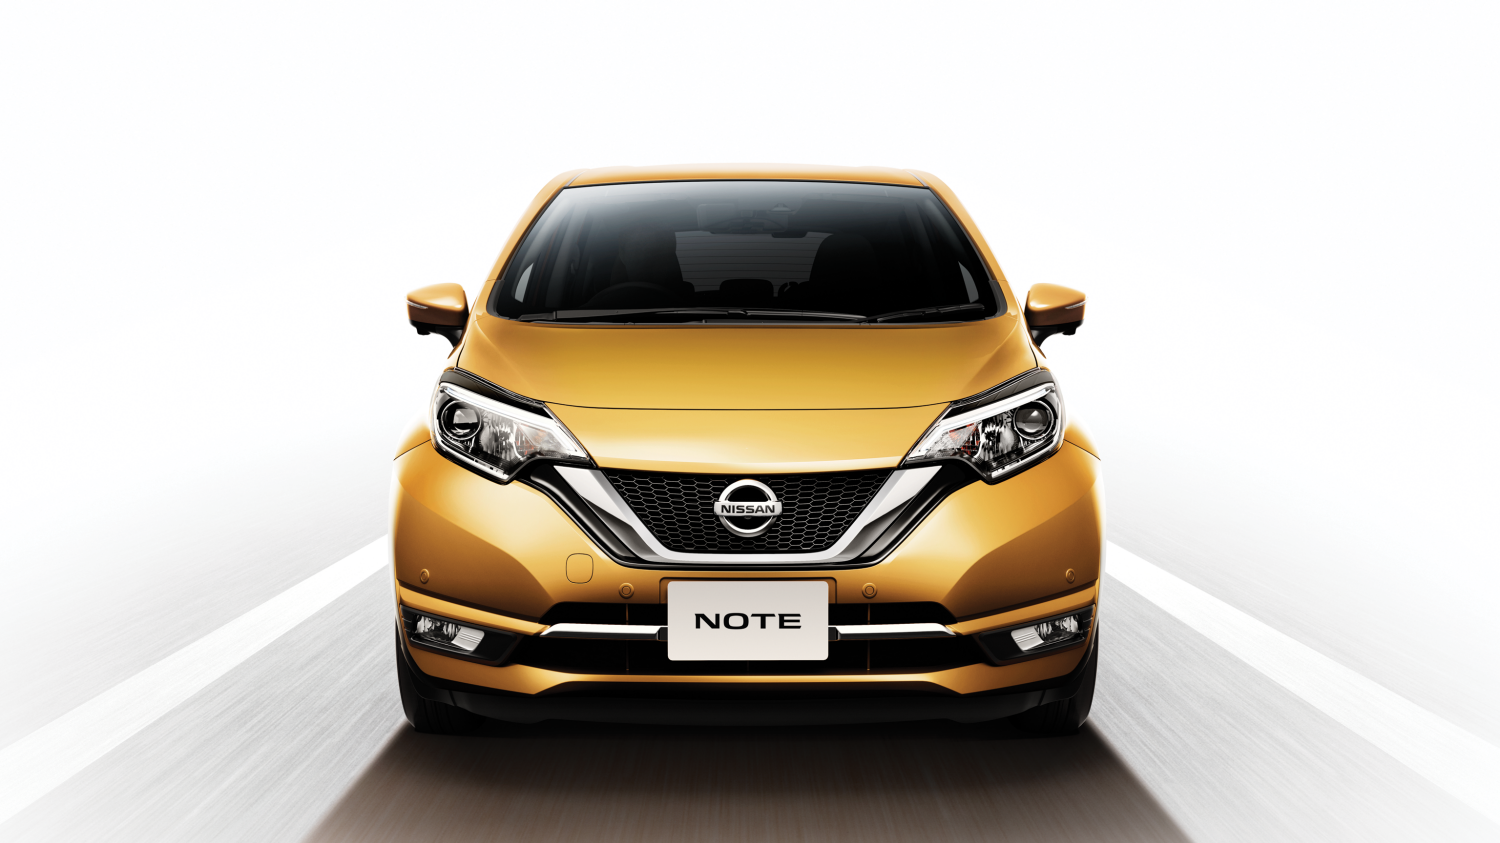 The New 2017 Note - Front Profile